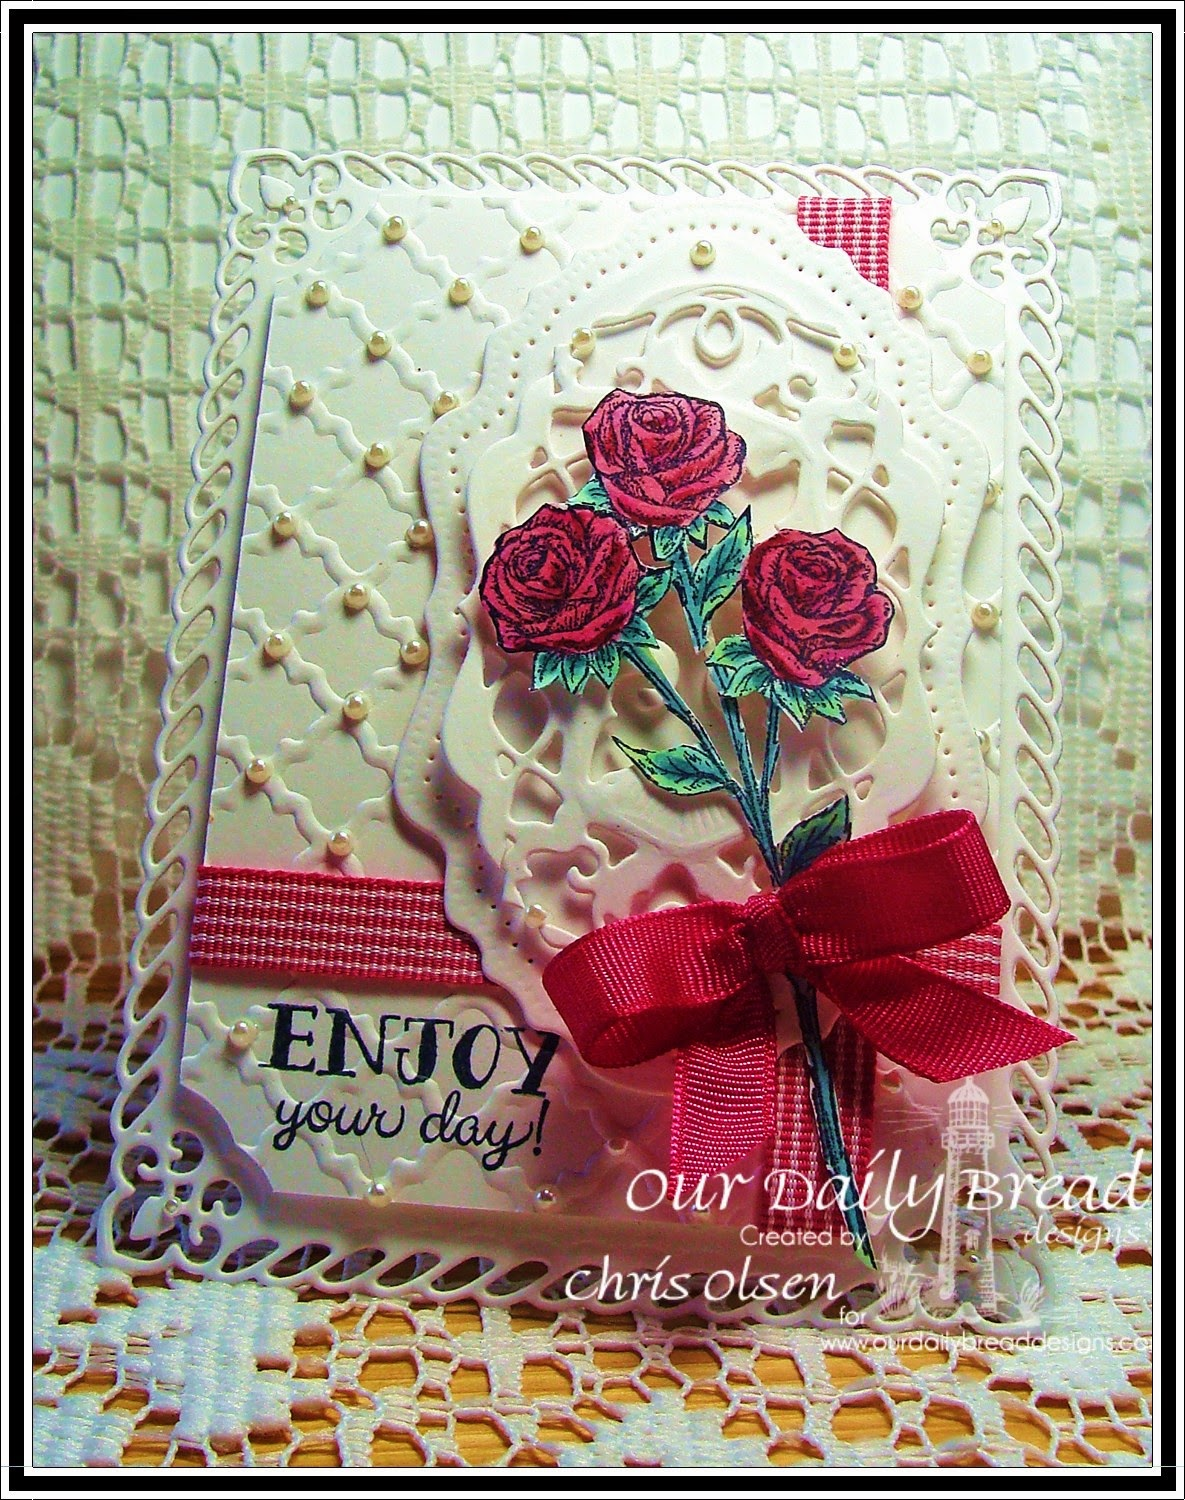 Our Daily Bread Designs, Flip Flop Fun, Rose, Vintage Labels dies, Vintage Flourish Pattern Dies, designer-Chris Olsen